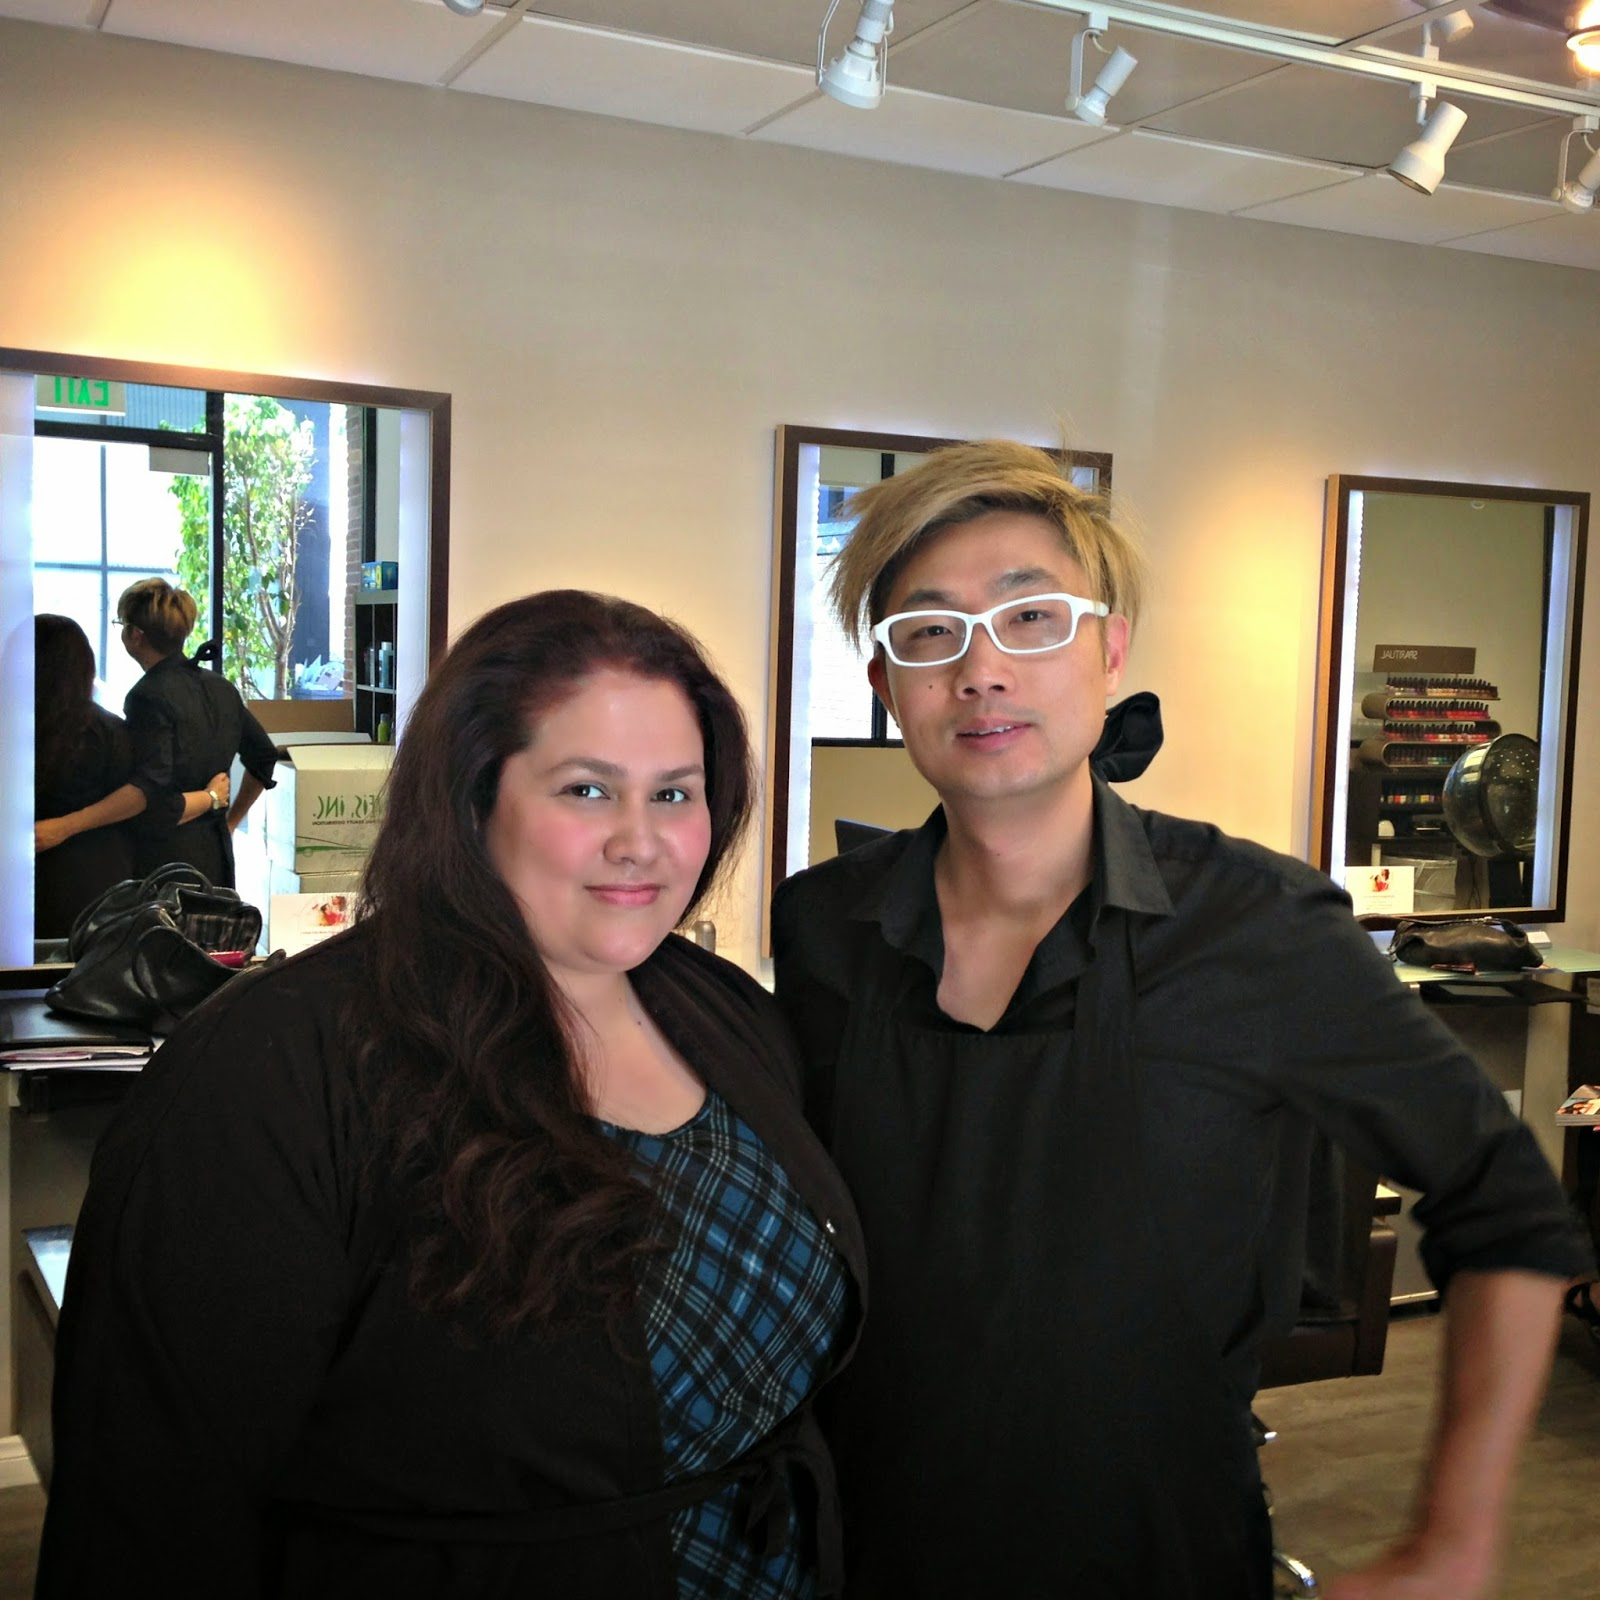 nelson j salon, beverly hills, aveda salon, hair transformation, red hair, no curls, blow out